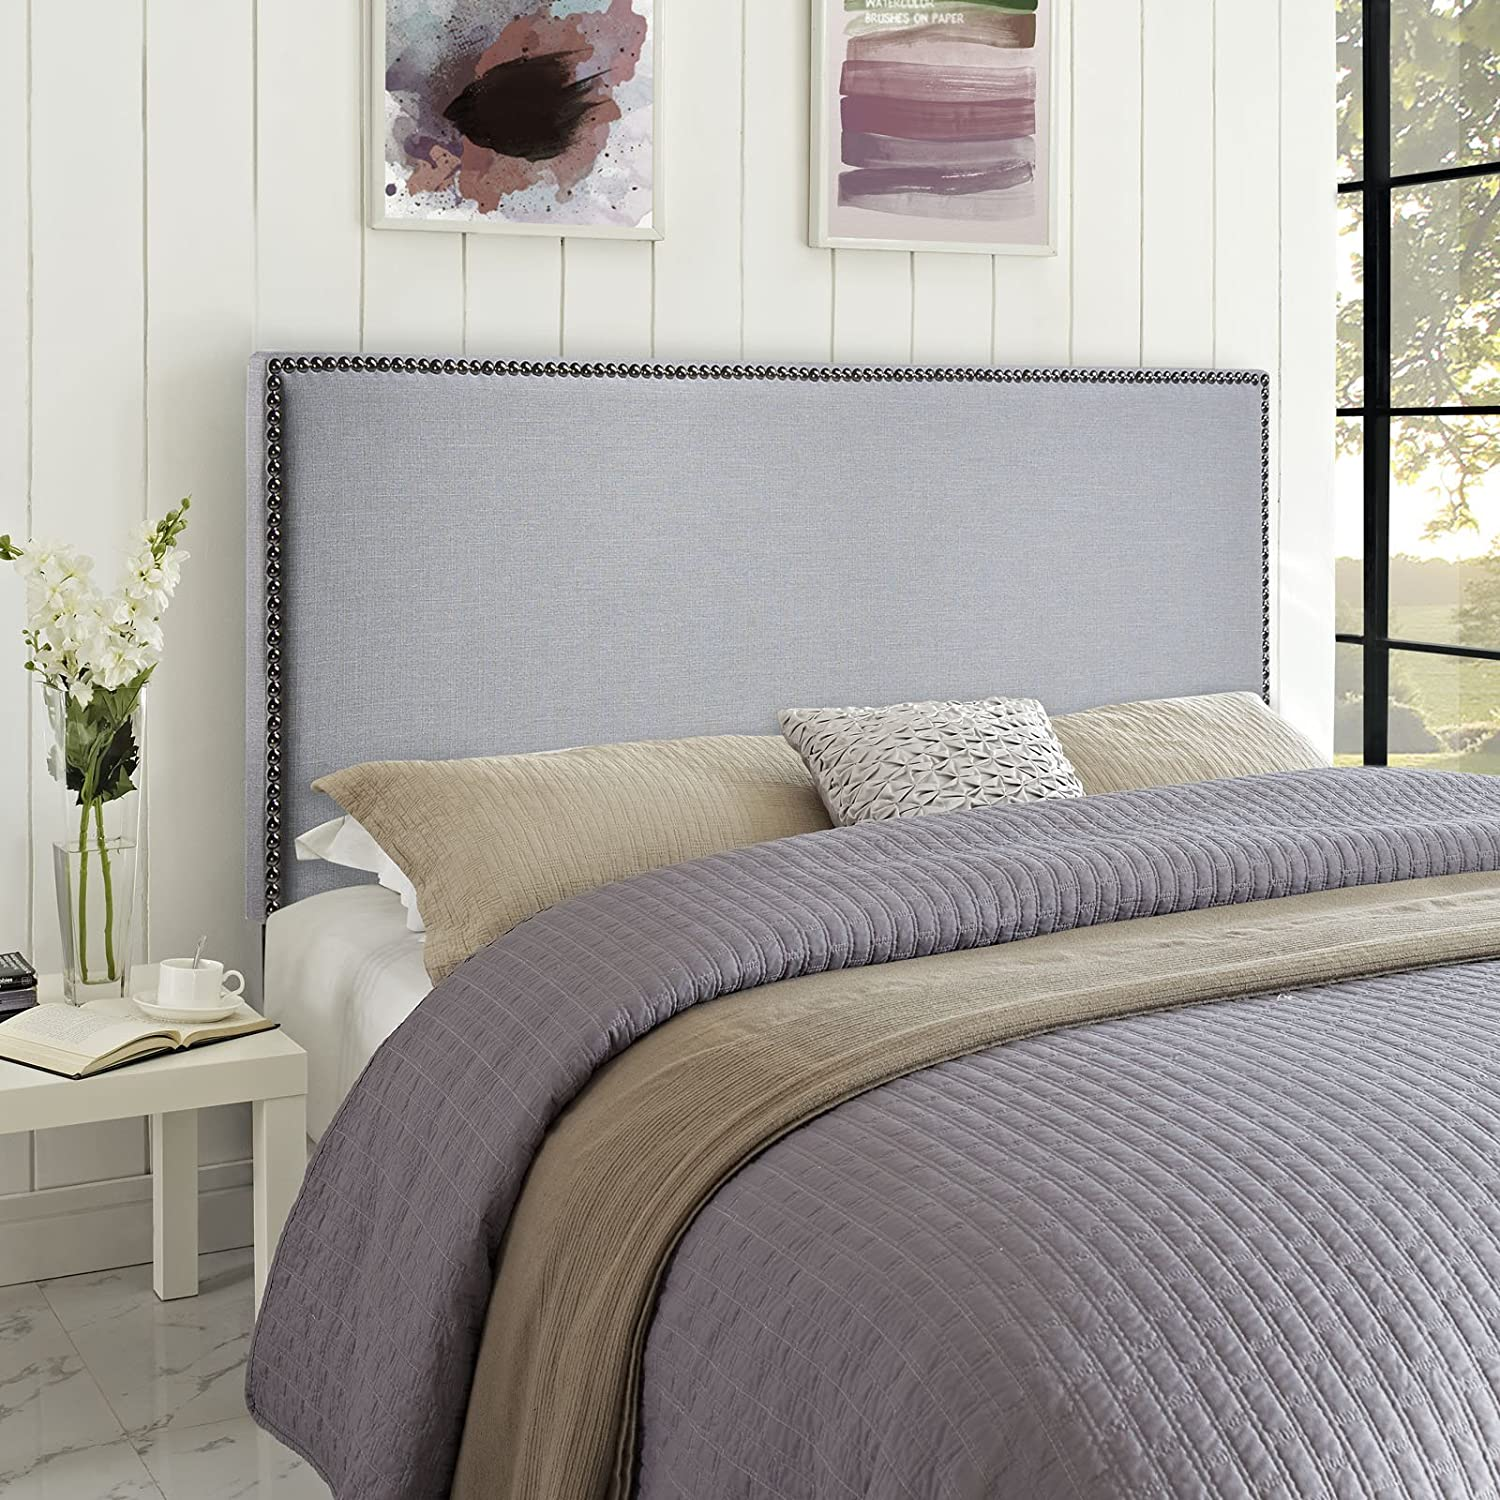 fabric queen size avery studio beige contemporary hb greyish and headboard modern baxton